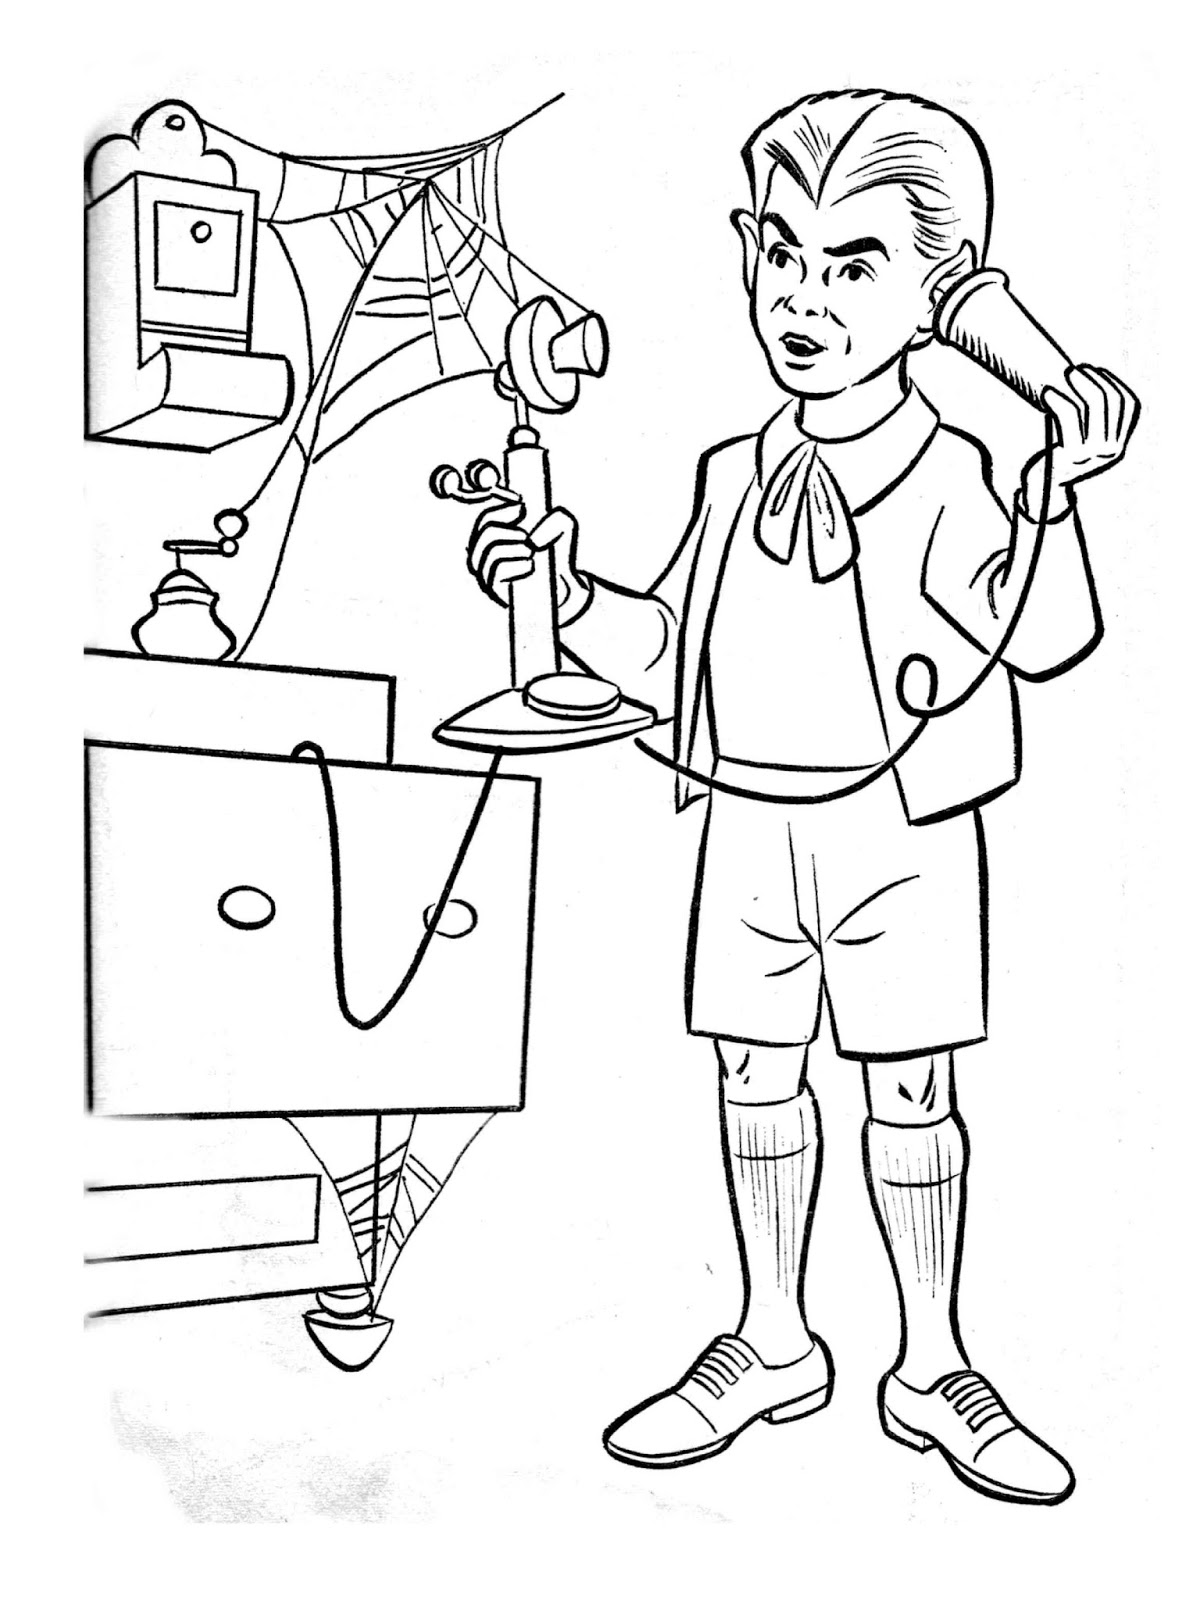 o ween coloring pages - photo #41